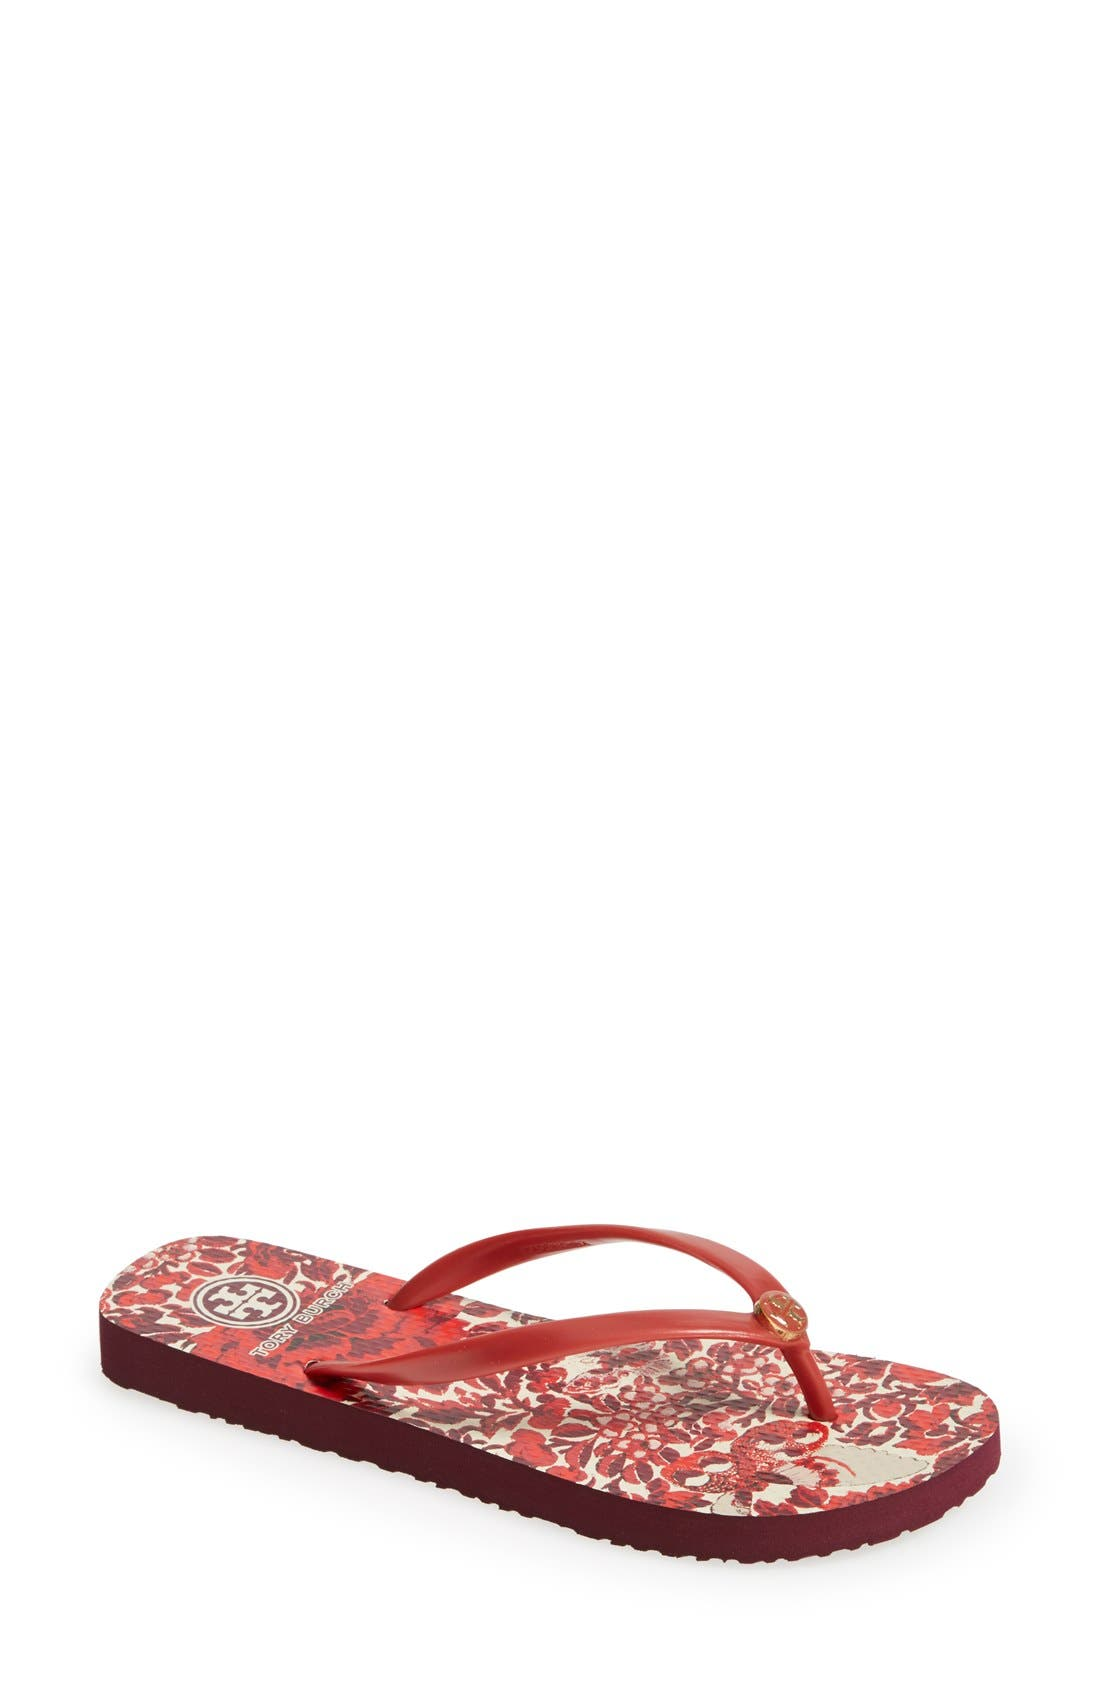 Main Image - Tory Burch Flip Flop (Women) (Nordstrom Exclusive)